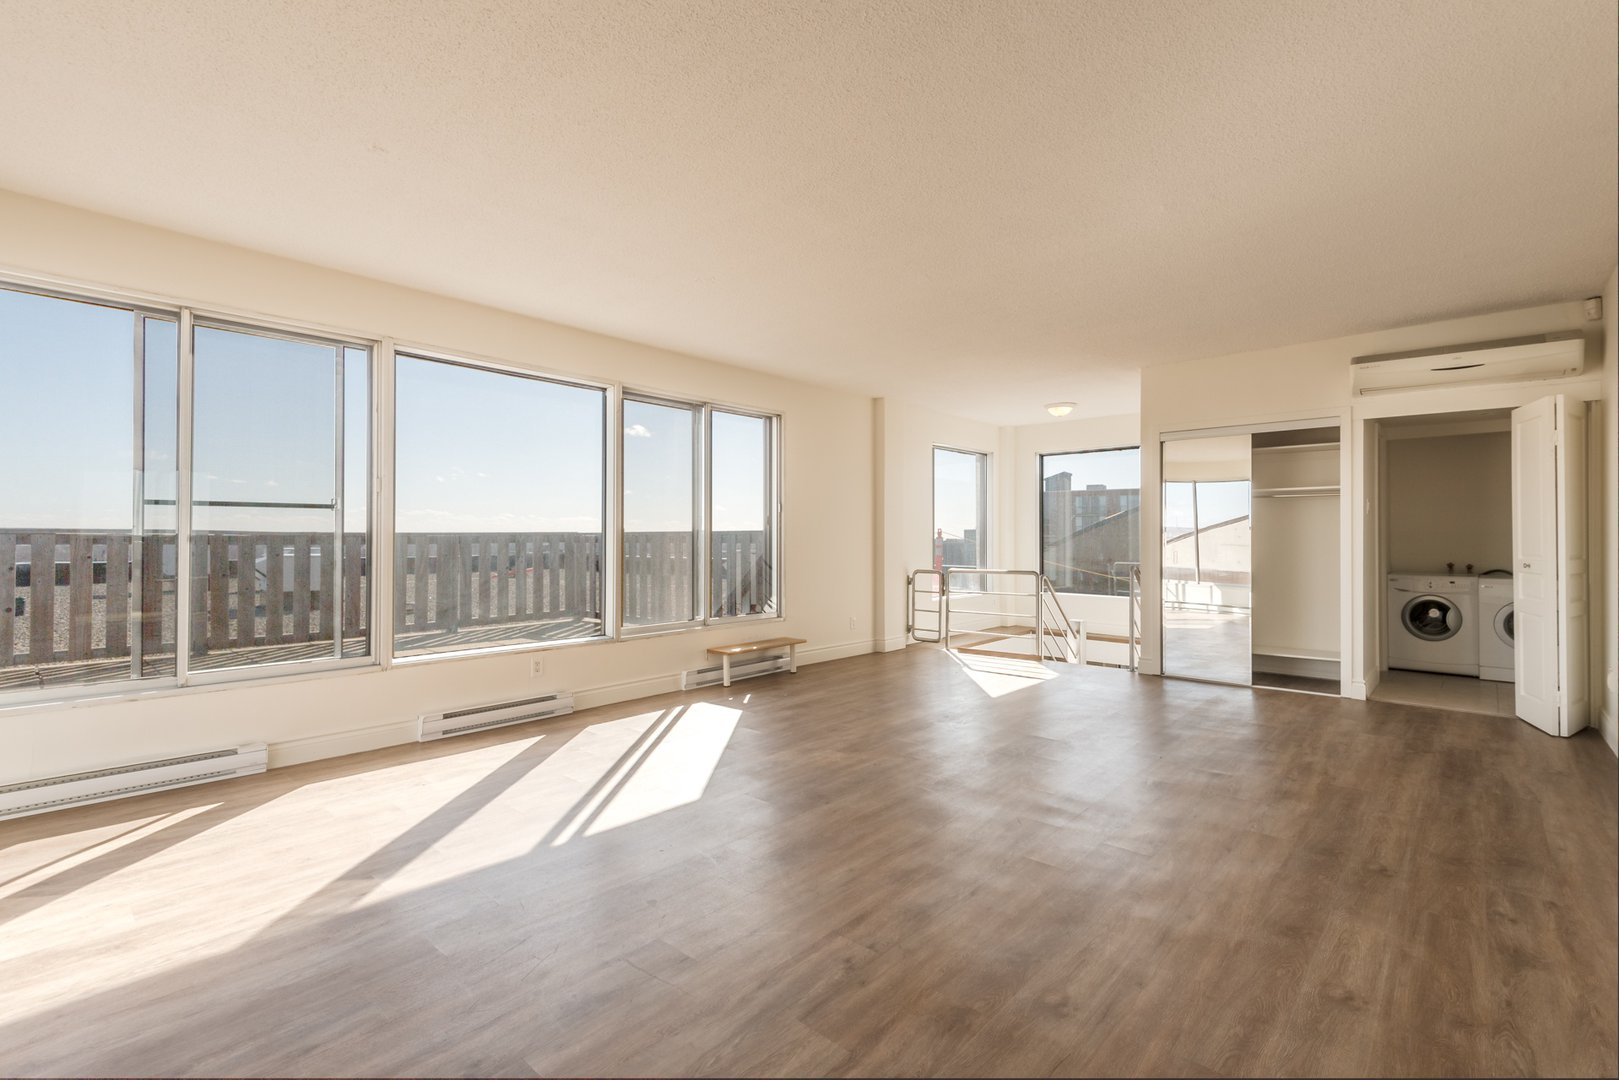 High-Rise Apartment for rent at 50 Quintin, suite 111, Ville Saint-Laurent, QC. This is the empty room with hardwood floor and natural light.